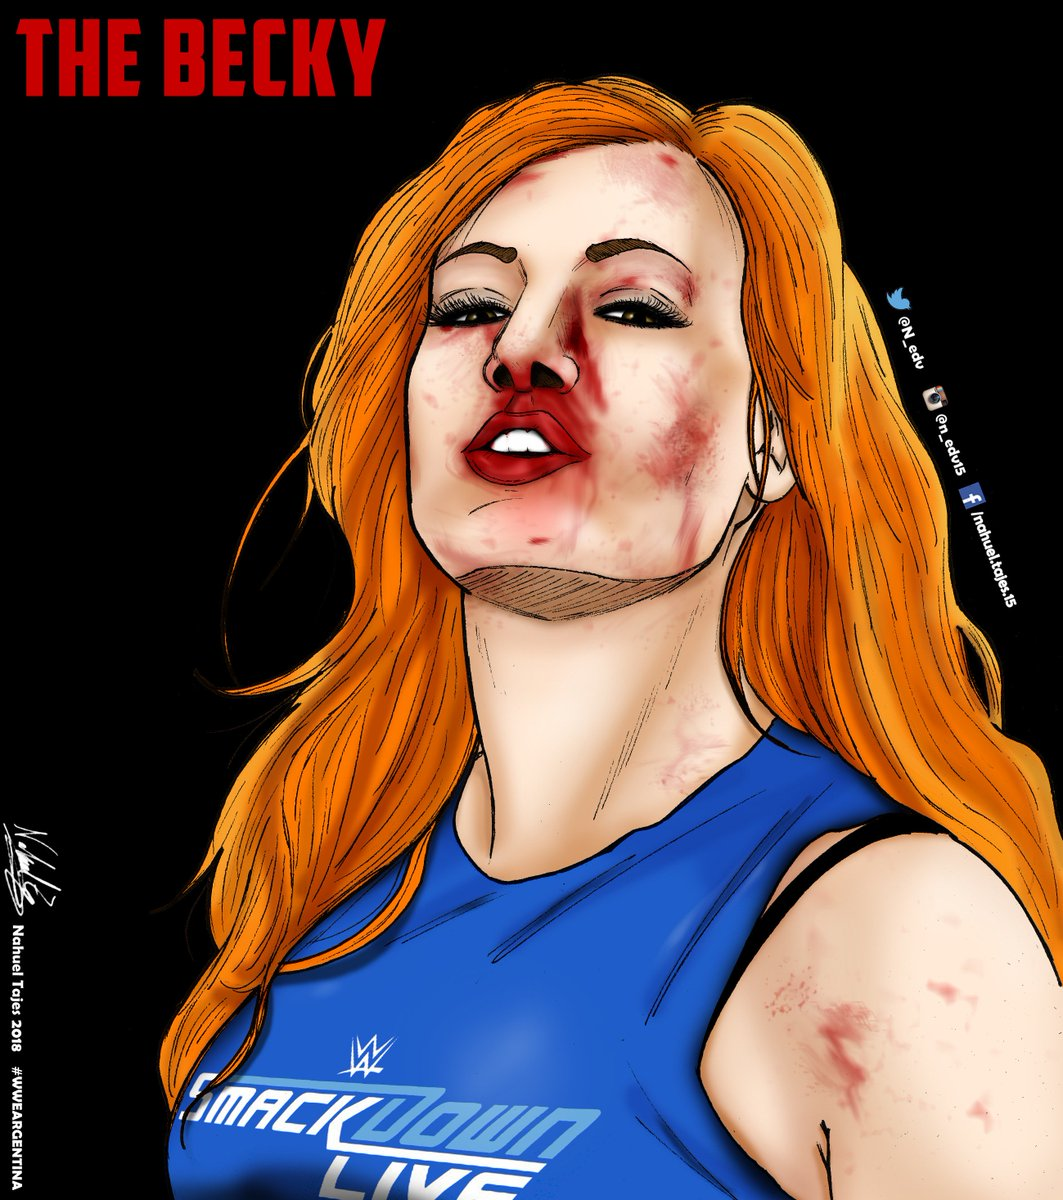 THE BECKY THE Best THE Over THE Heel THE Face THE Woman THE Man THE Champ Get well soon @BeckyLynchWWE #WWE #WWEArgentina #SDLIVE #BeckyLynch #StraightFire #TheMan #SurvivorSeries #SmackDownLIVE #fanart @wwe